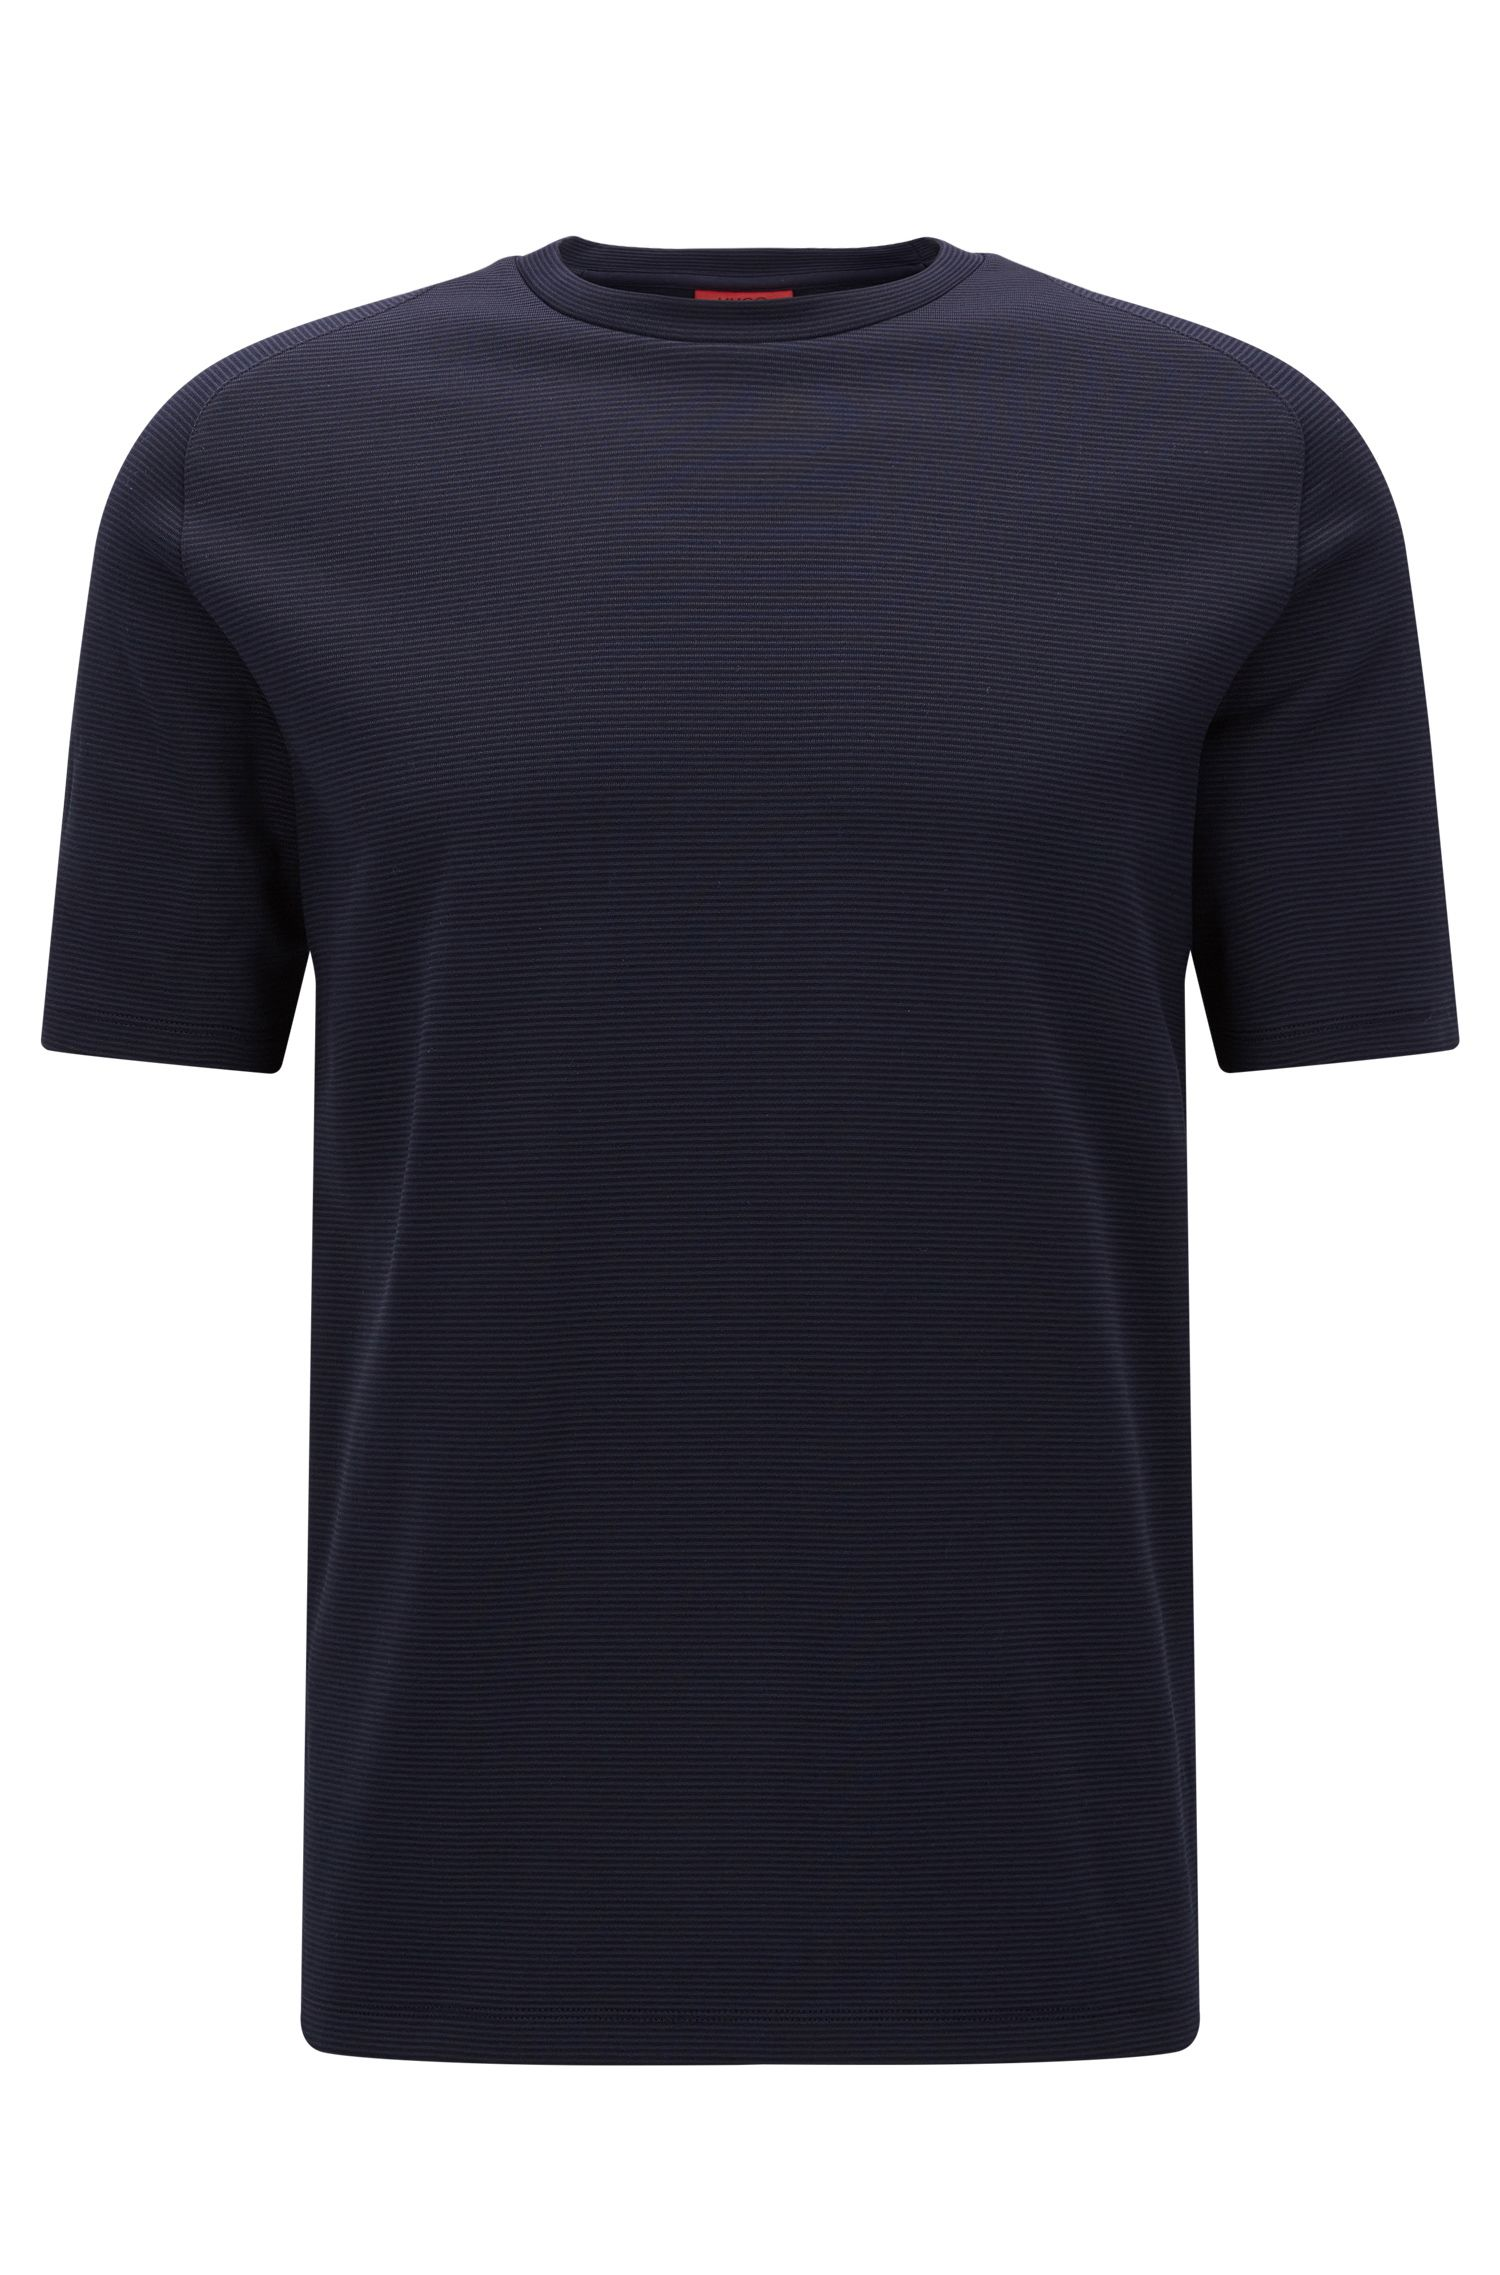 Relaxed-fit T-shirt in double-faced fabric